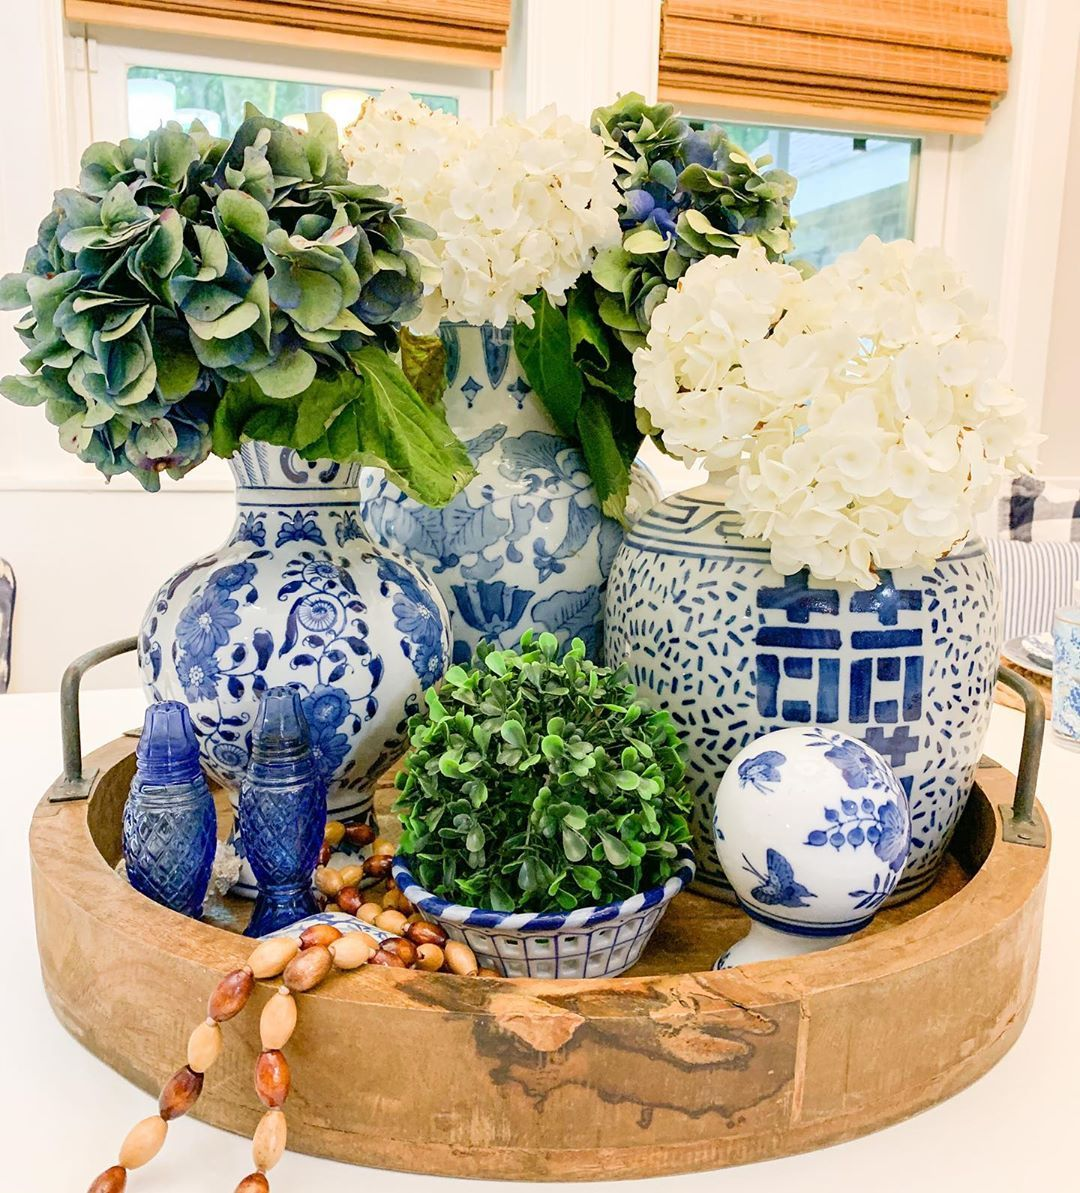 "Blue Bay Decor & Rentals on Instagram: ""Happy Rainy Friday! Get inside and play house!!! #kitchenislanddecor #centerpiecesideas #blueandwhitelove #blueandwhitedecor…"""